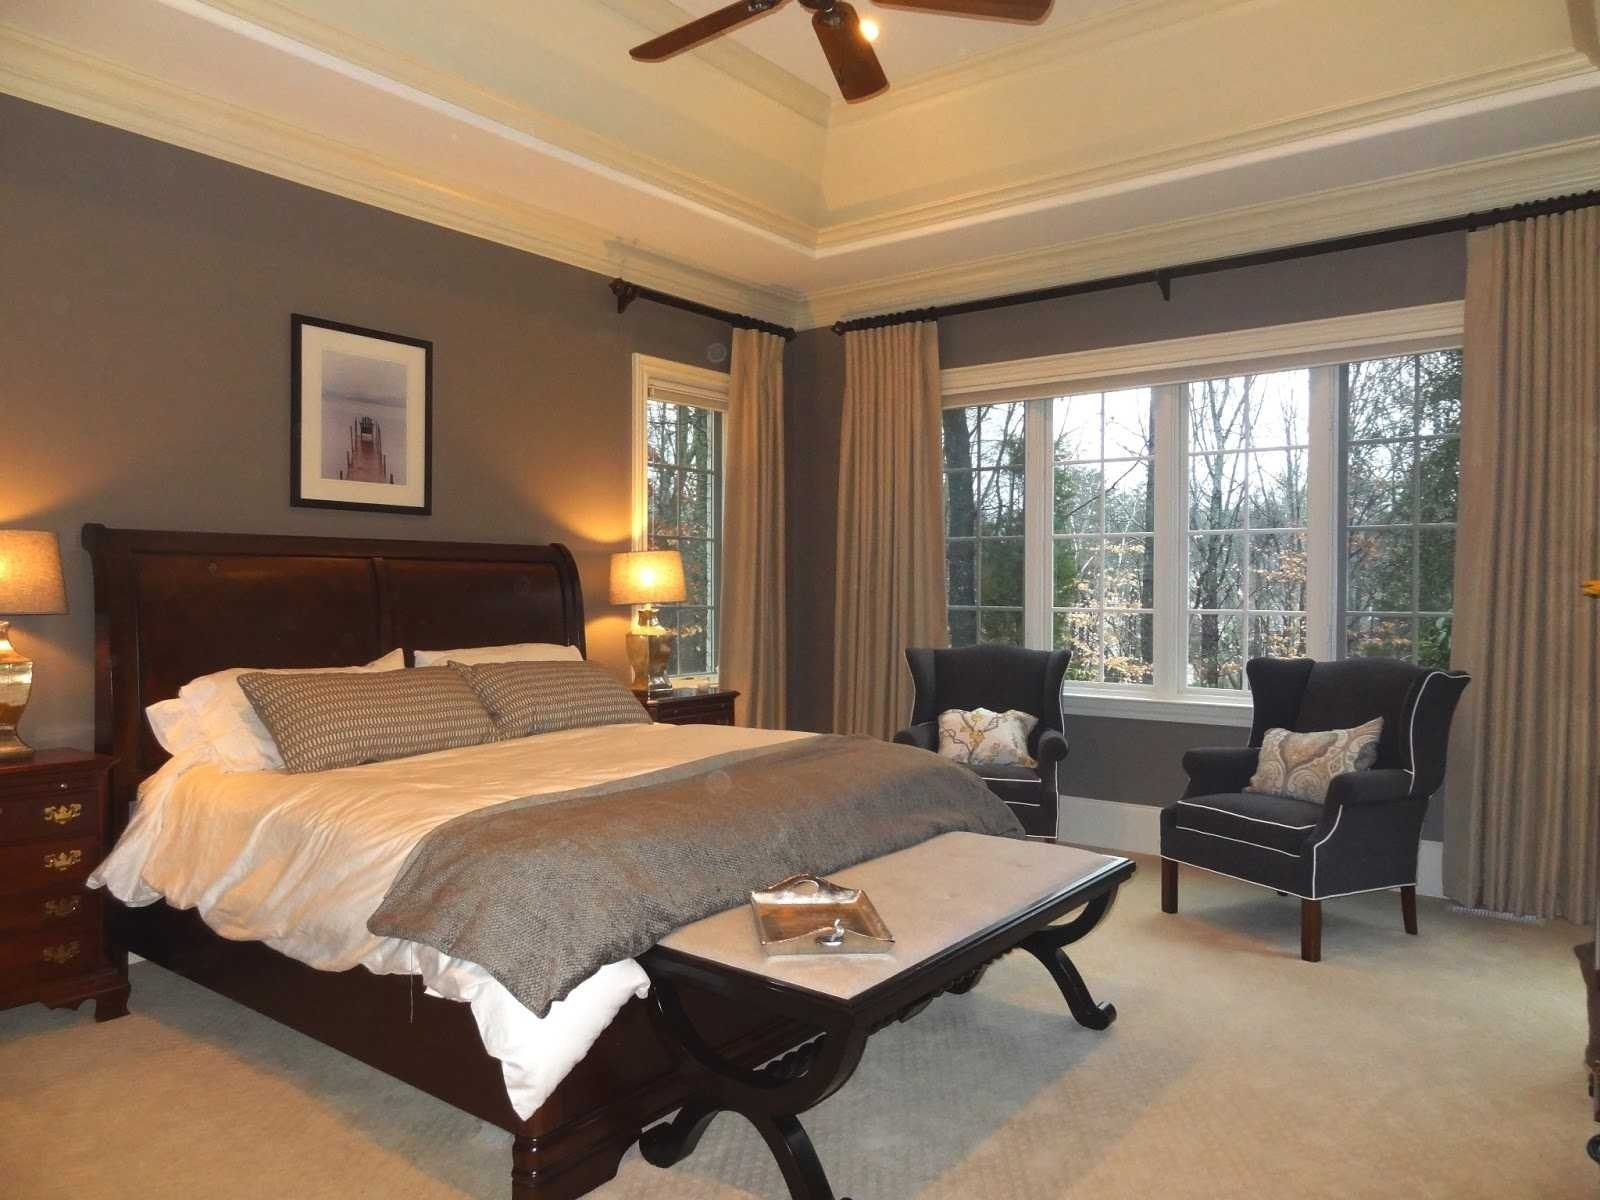 10 Fabulous Master Bedroom Window Treatment Ideas window treatment ideas for master bedroom living room 2018 with